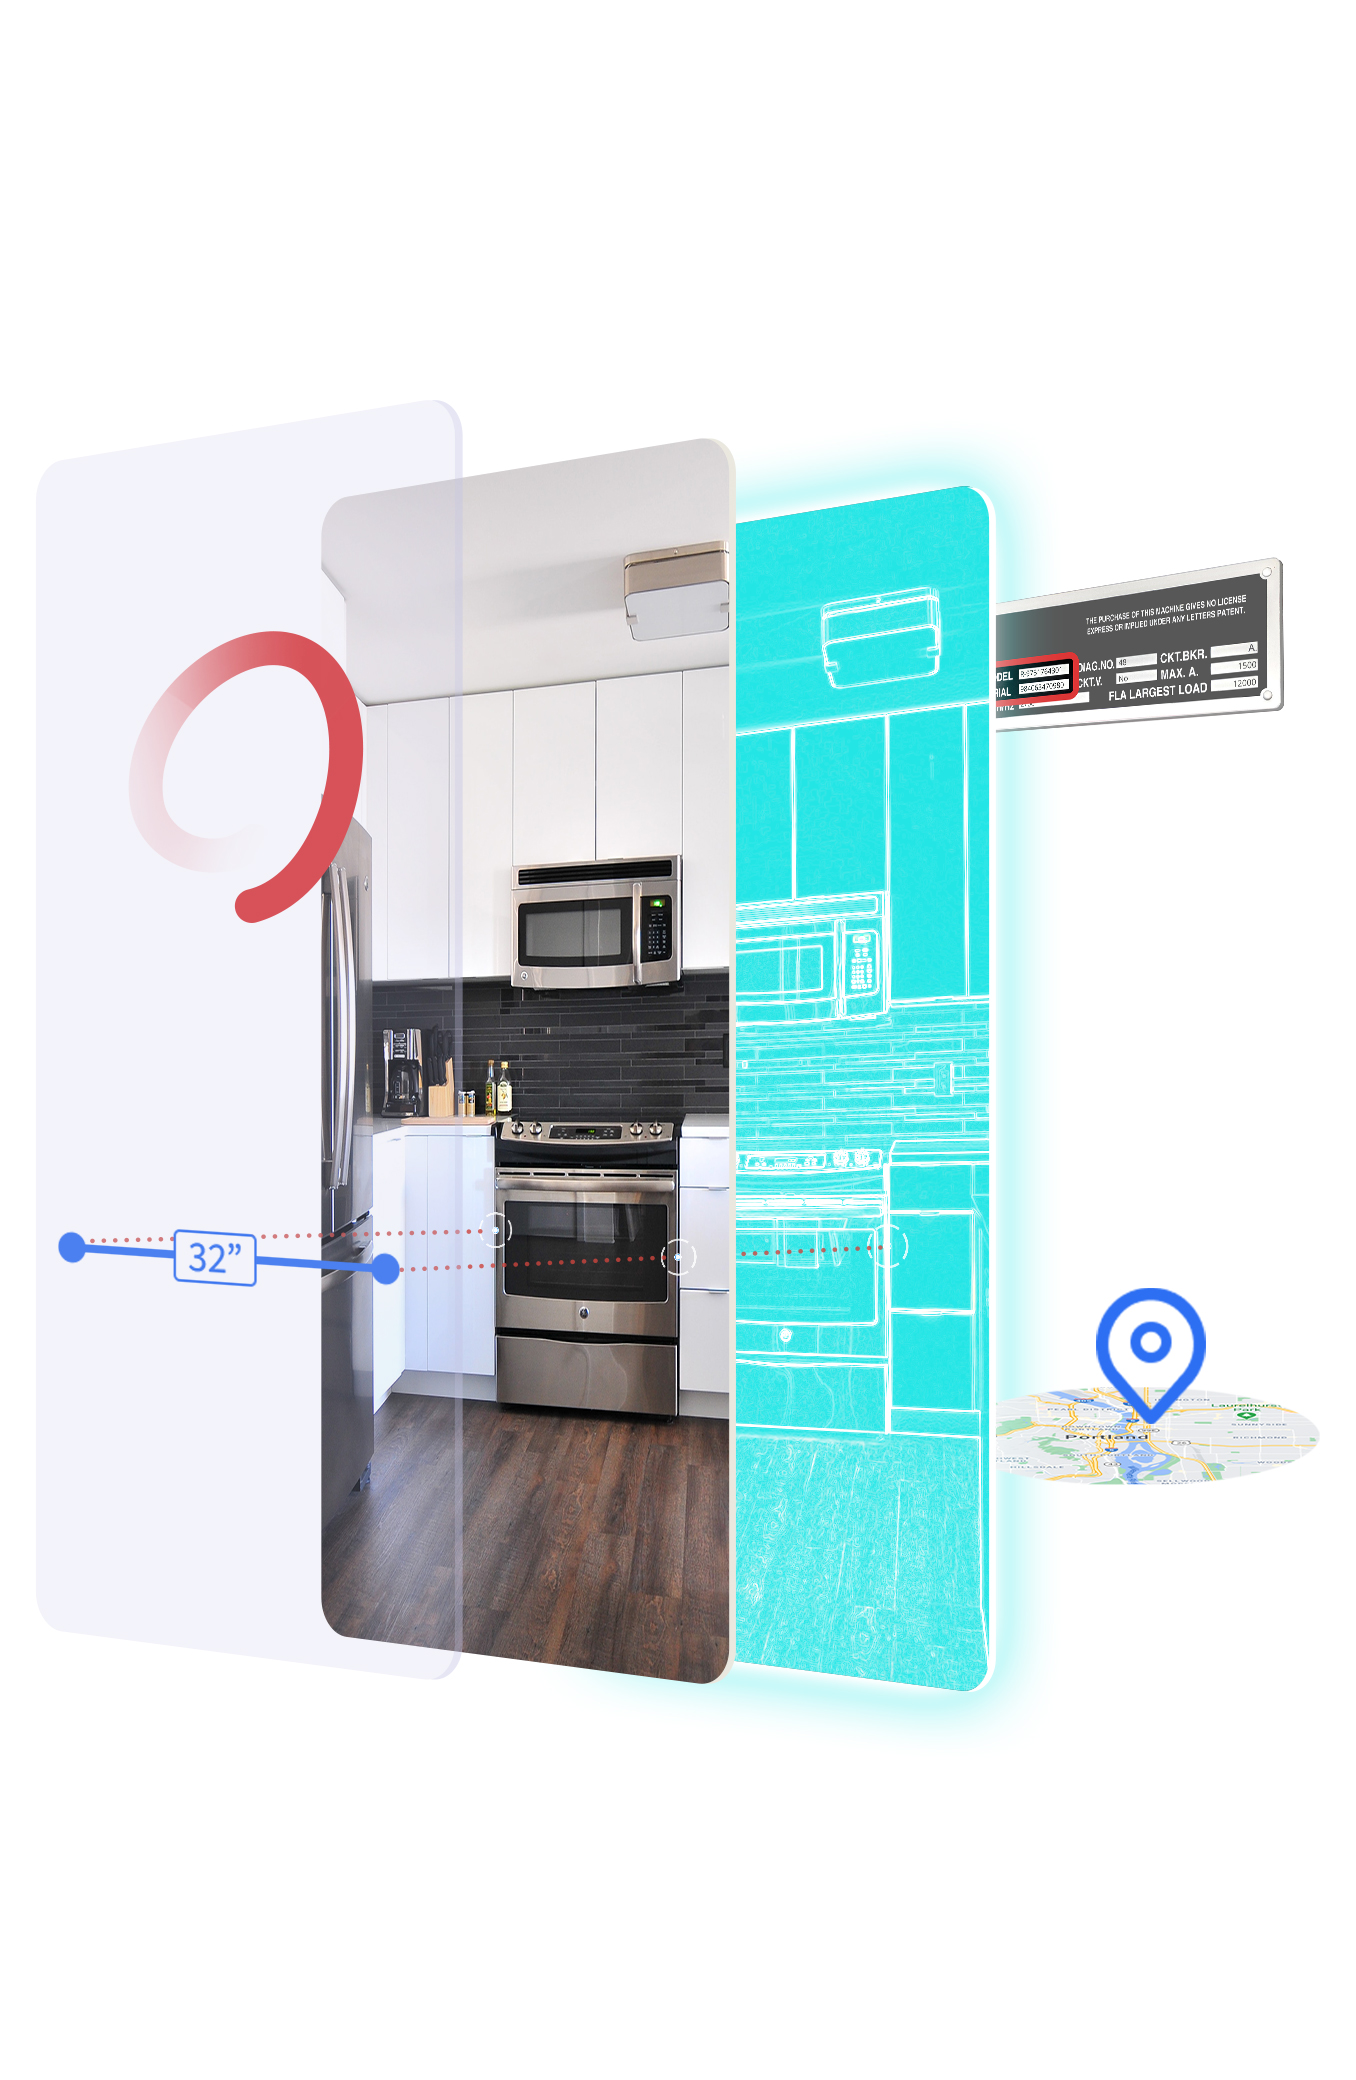 Contextual 3D modeling overlaying a kitchen on a phone screen.